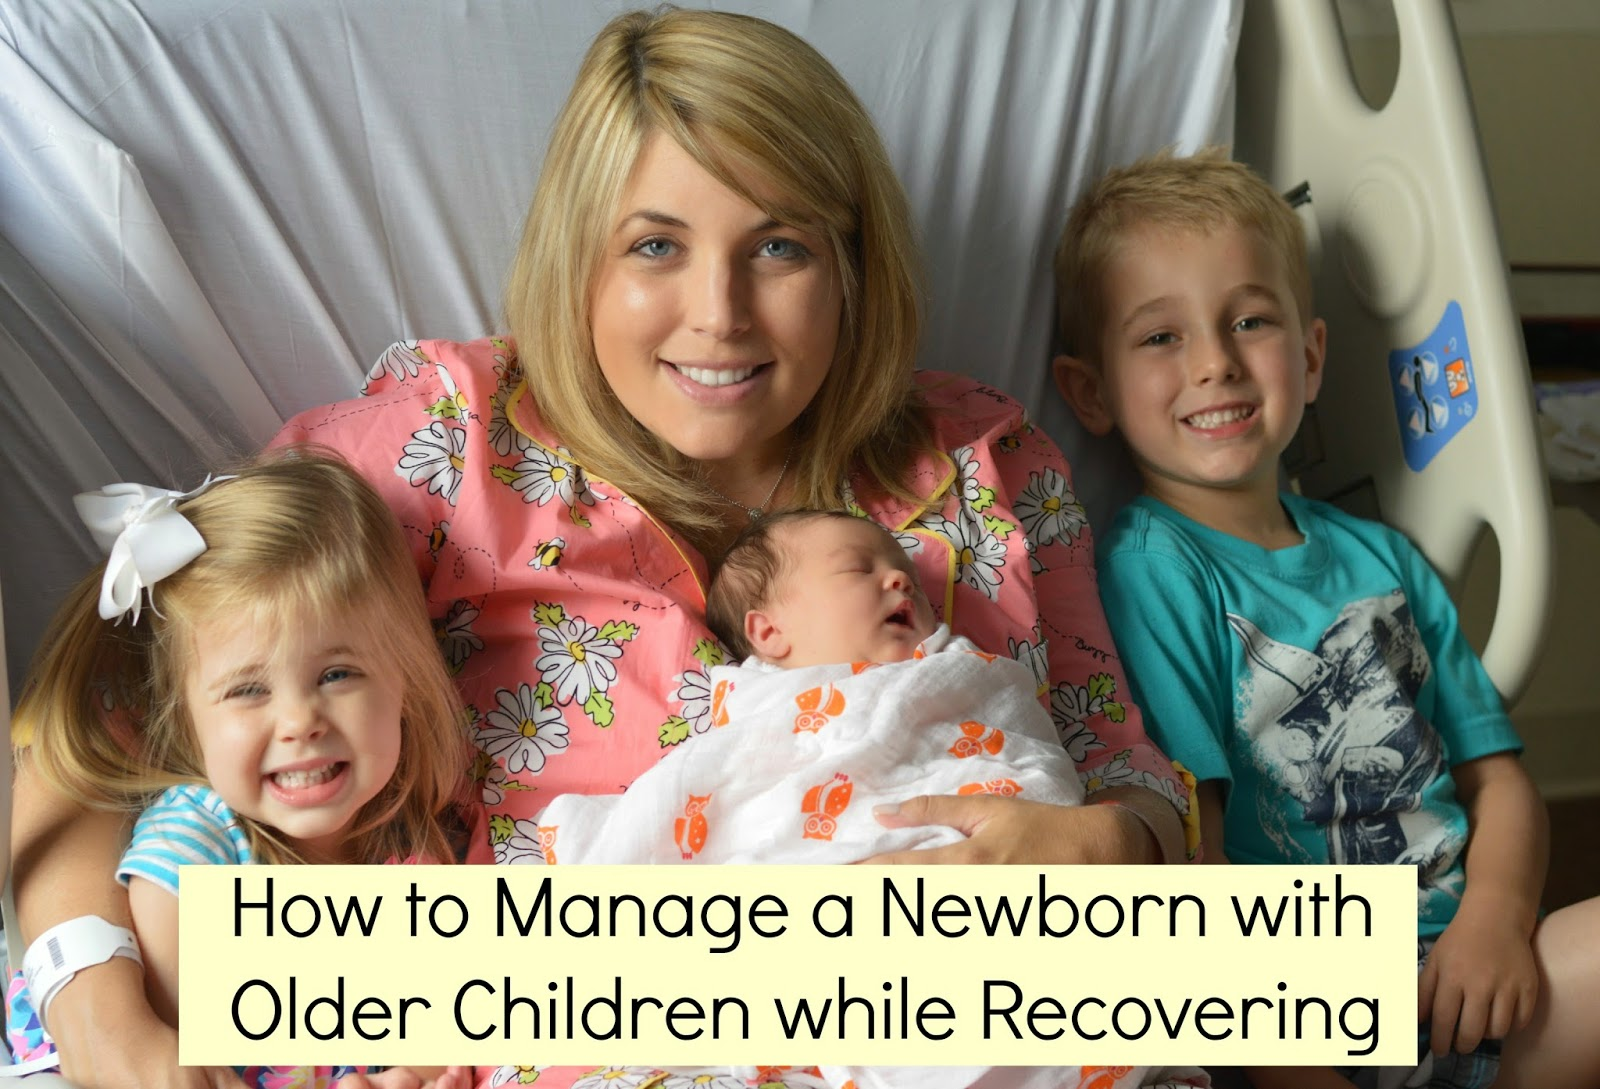 How to Manage a Newborn with Older Children while Recovering